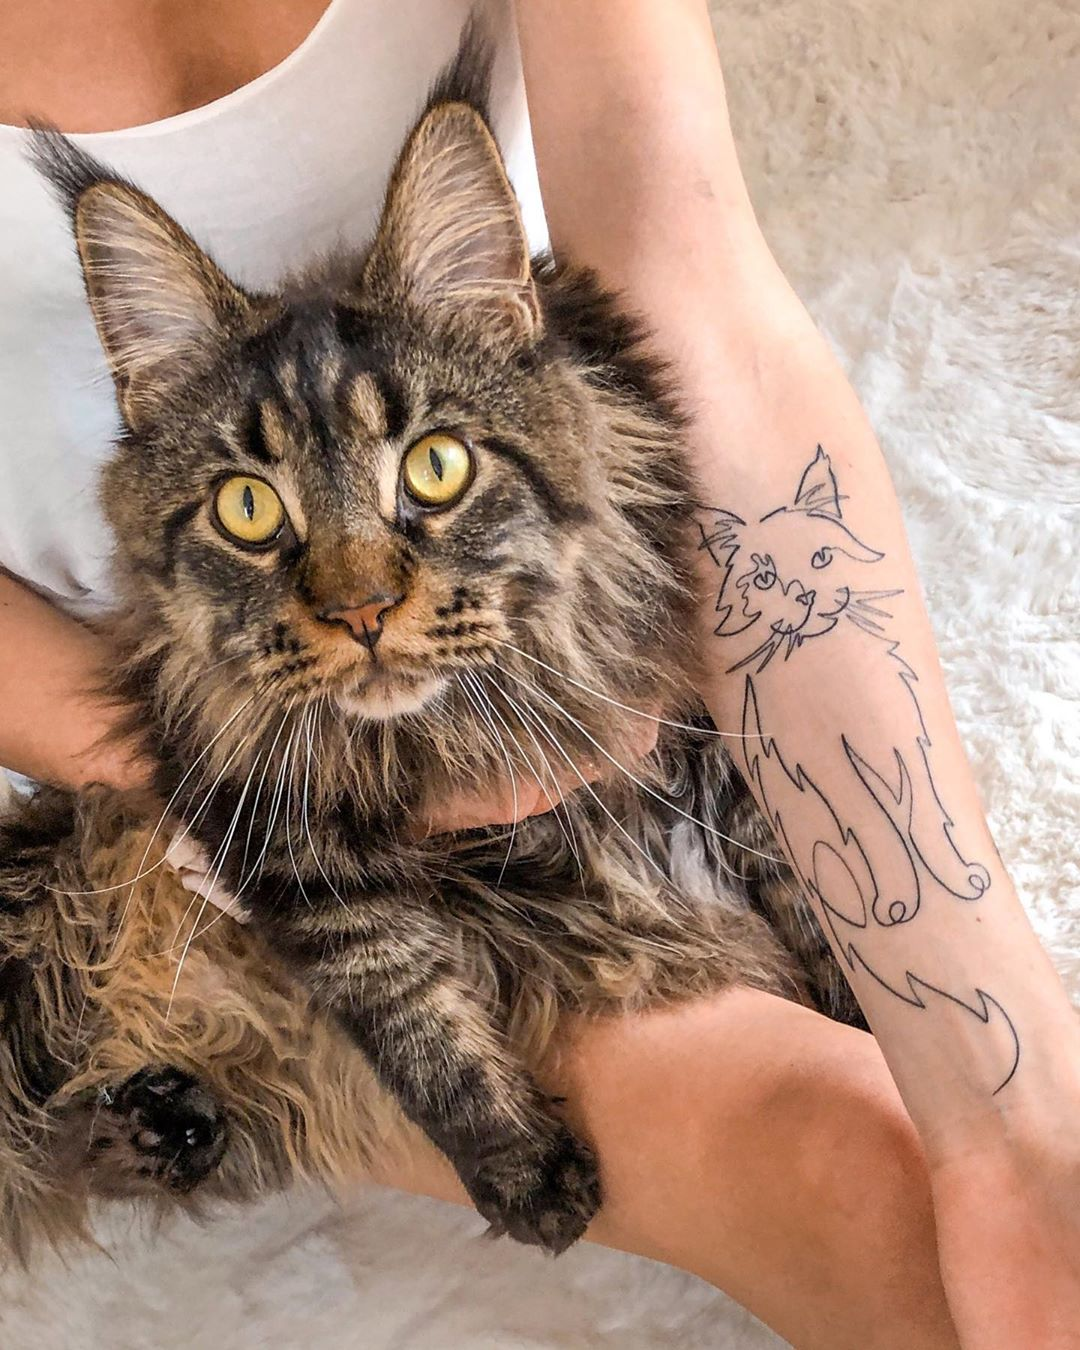 The cutest cat tattoos you'll ever see 16